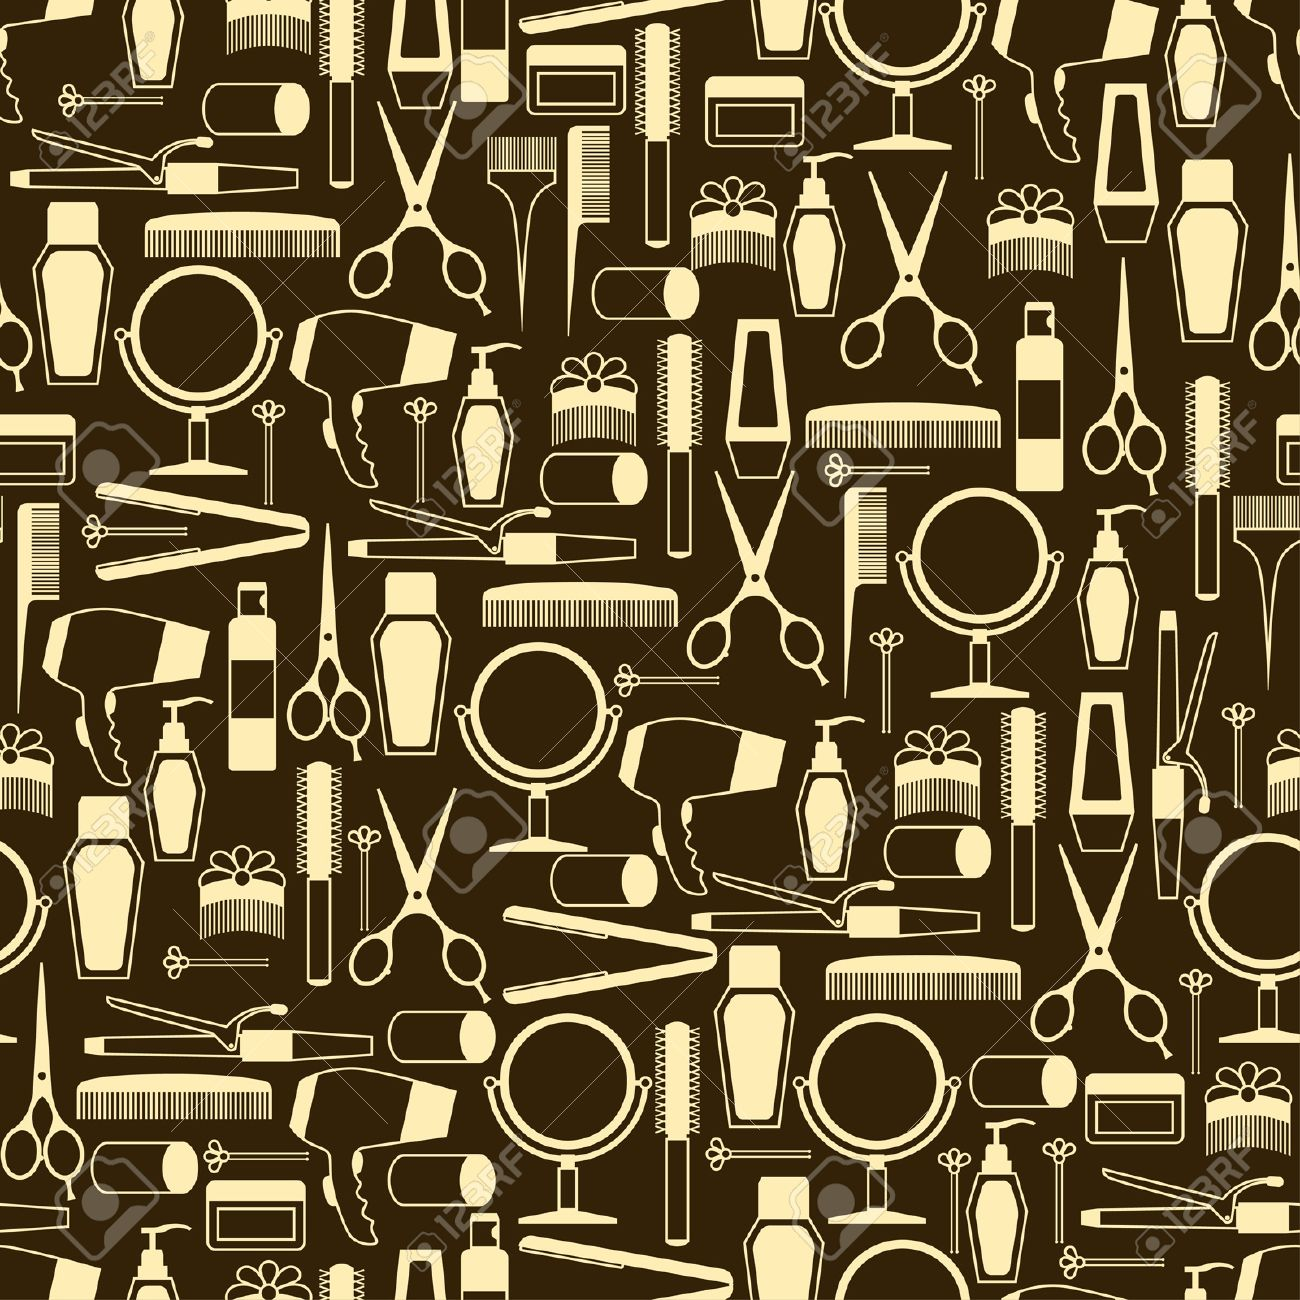 Hairdressing tools seamless pattern in retro style. Stock Vector - 21535689